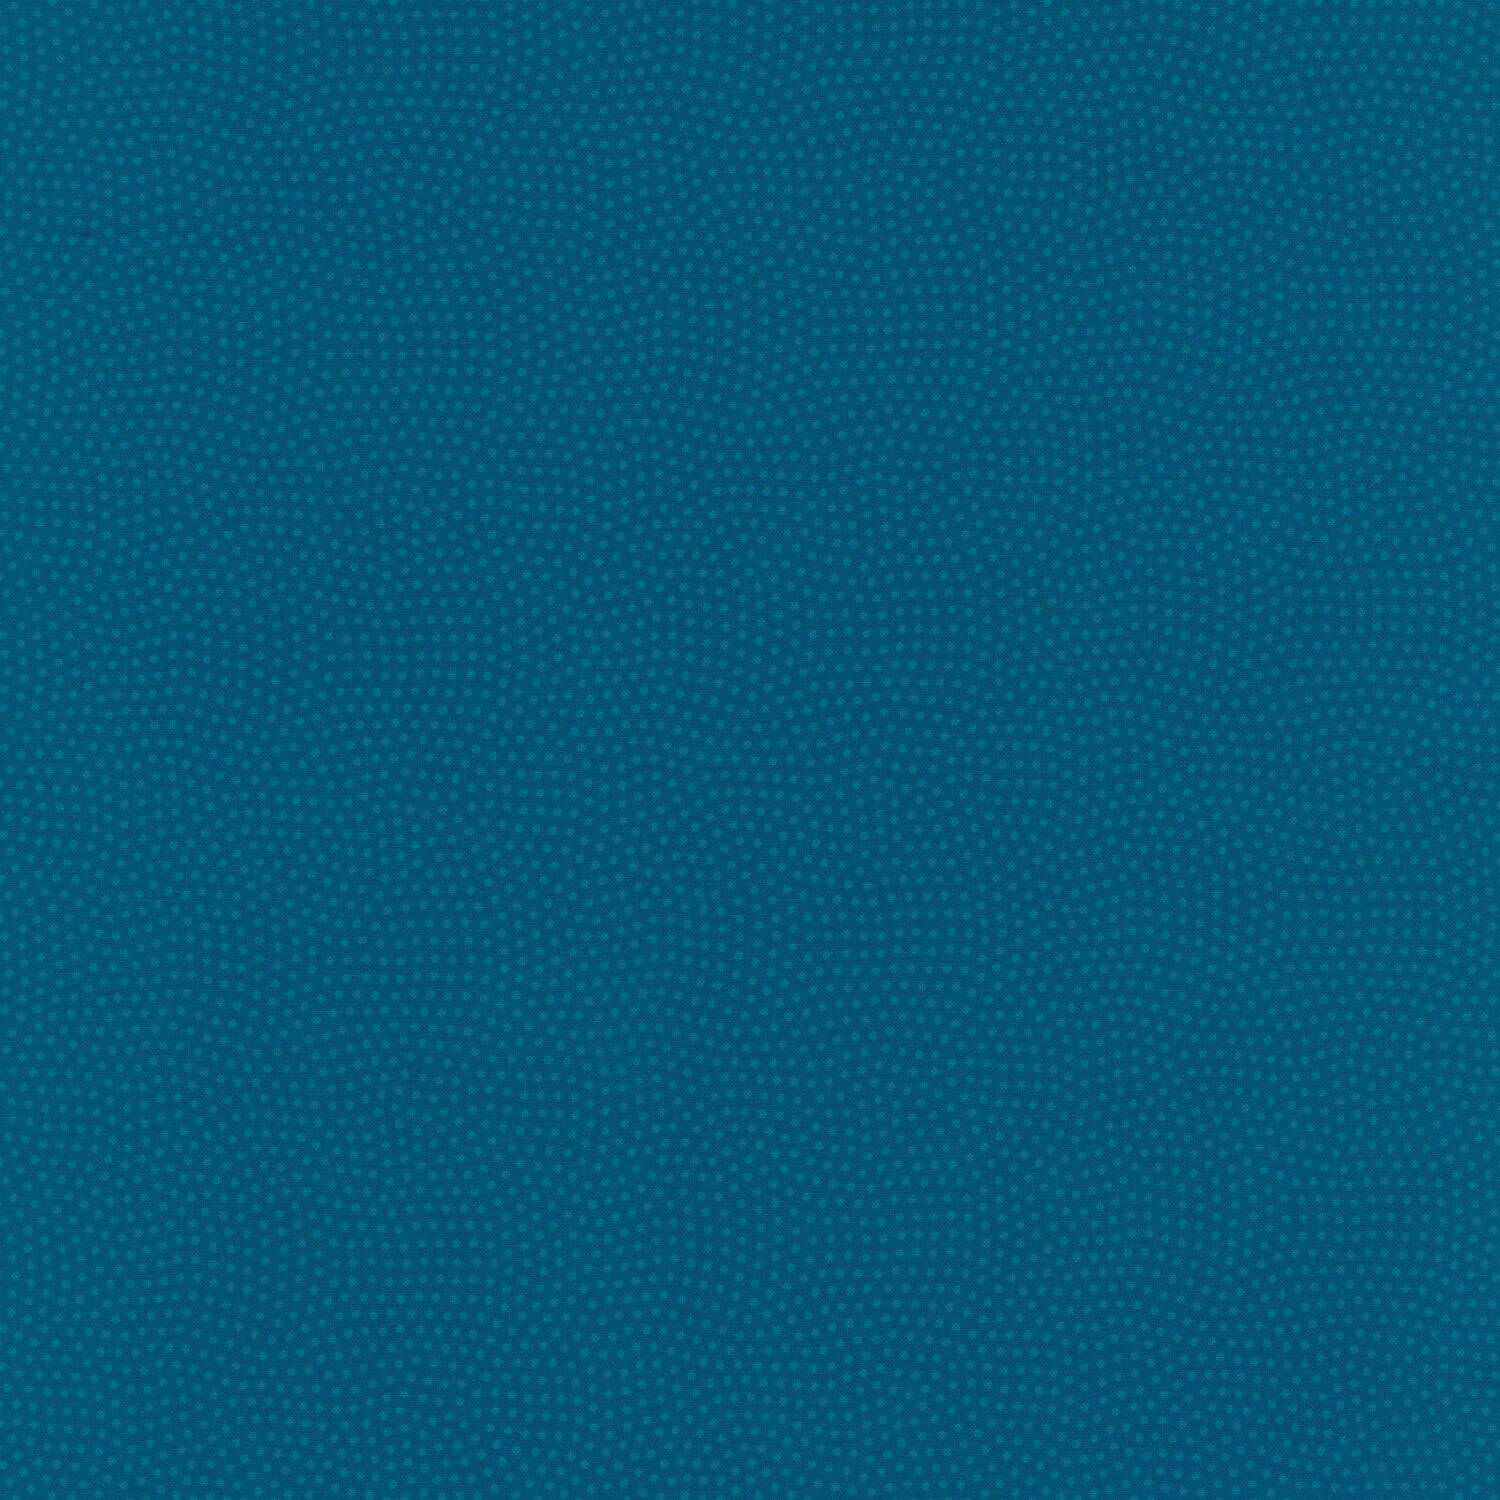 Ocean Spin Fabric by Timeless Treasures